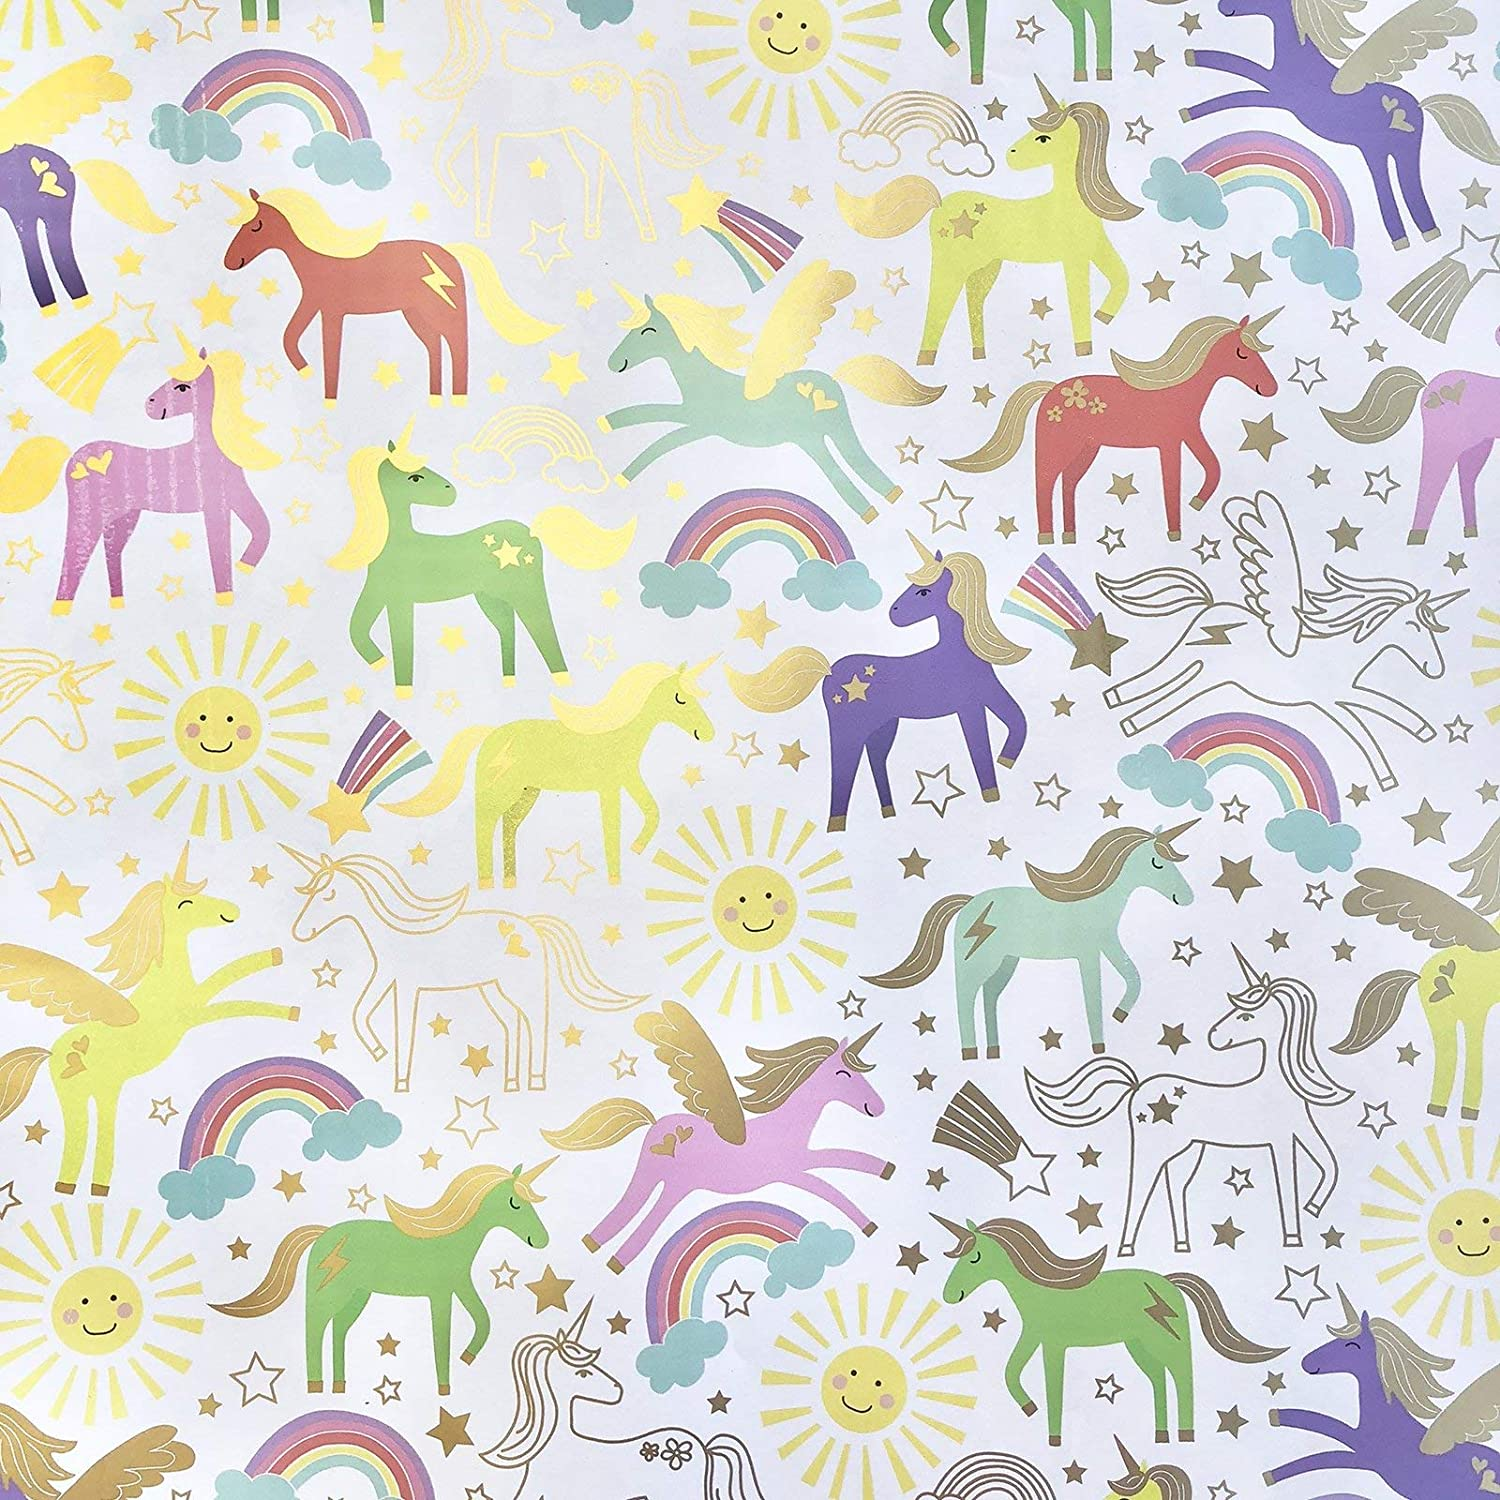 2 SHEETS OF THICK GLOSSY  GIRLS CHILDREN/'S  UNICORN BIRTHDAY WRAPPING PAPER